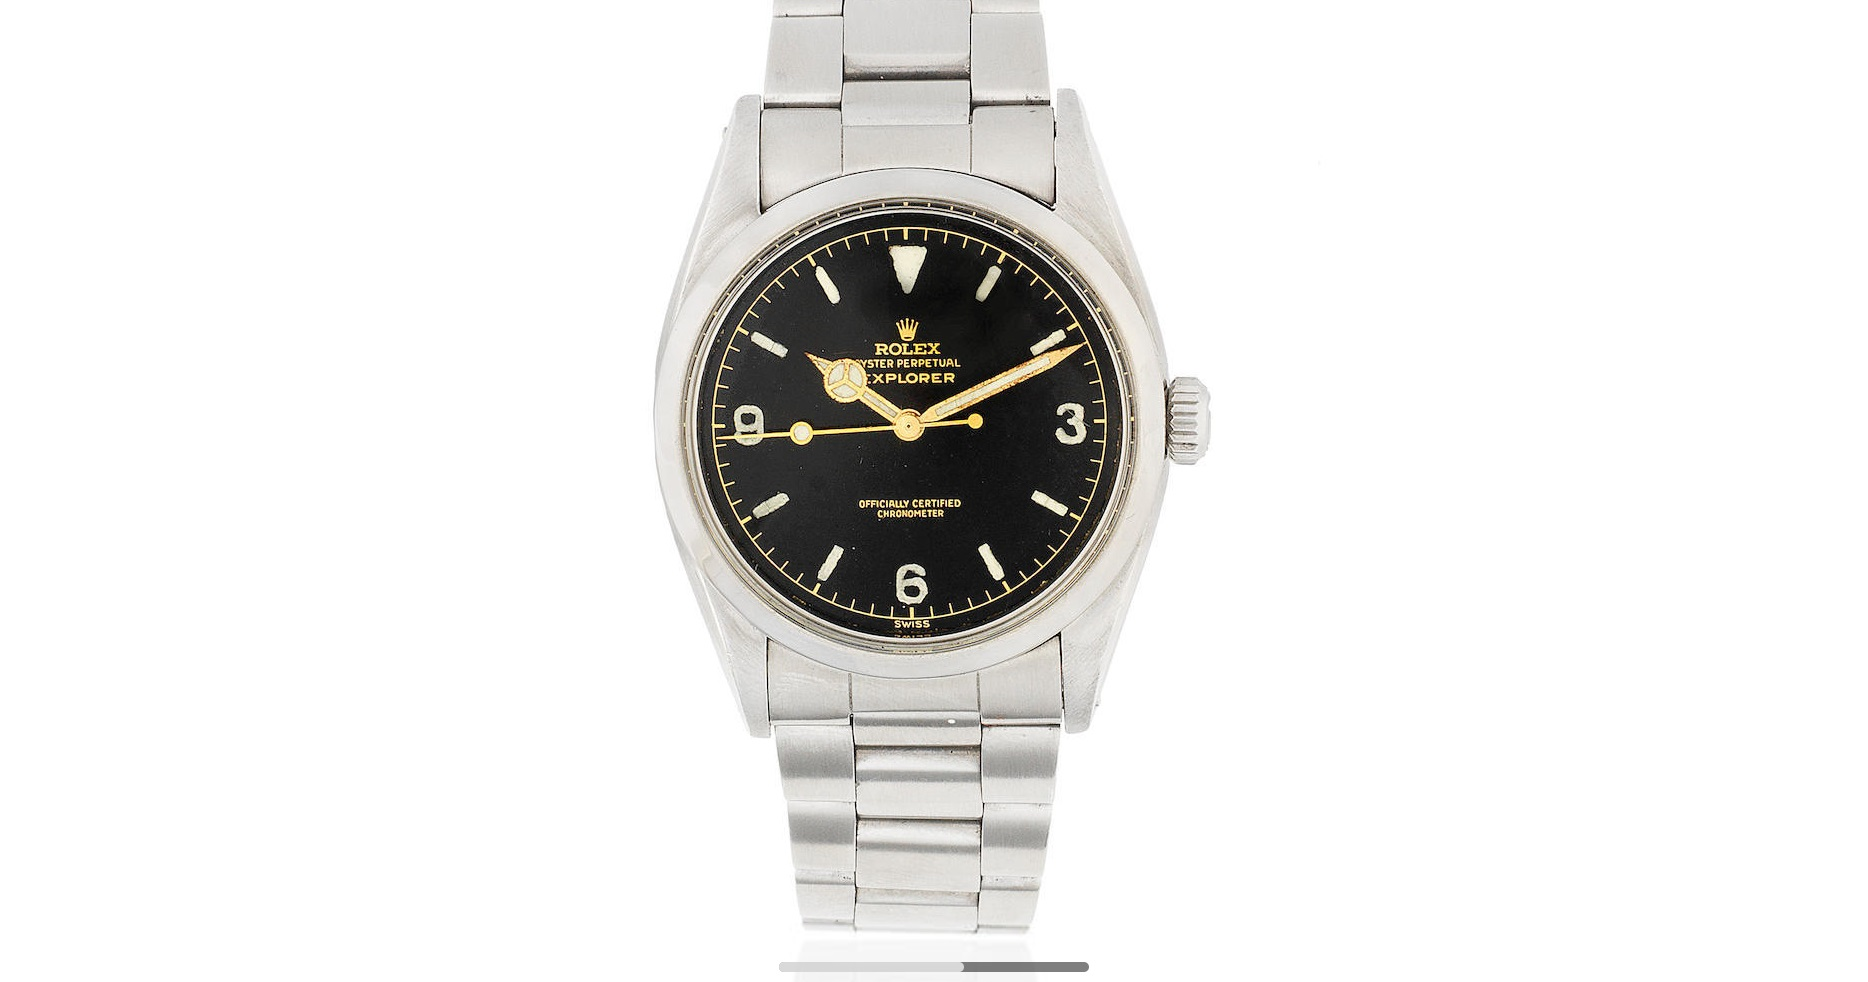 Lot 12 - Rolex. A stainless steel automatic bracelet watch